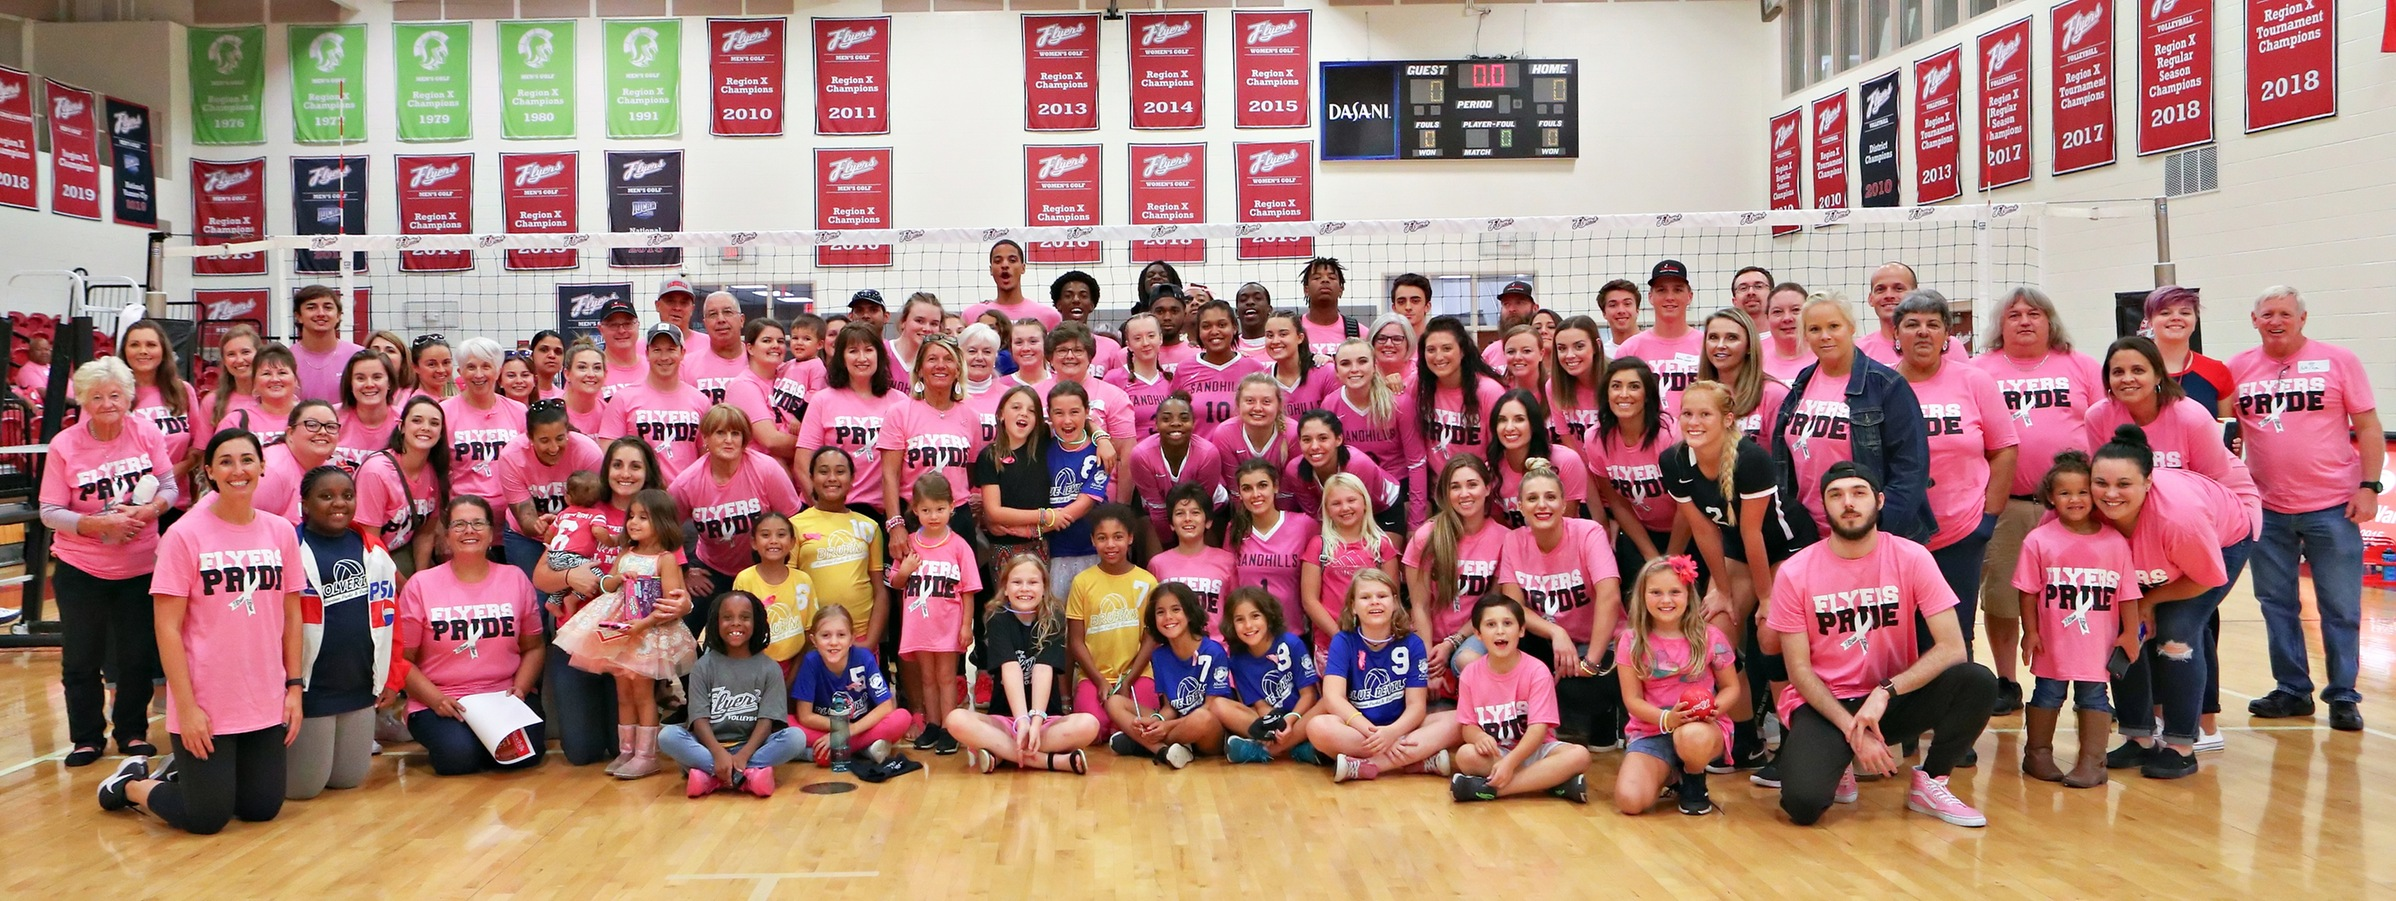 Lady Flyers Remain Undefeated in Region X With Pink Out Night Win